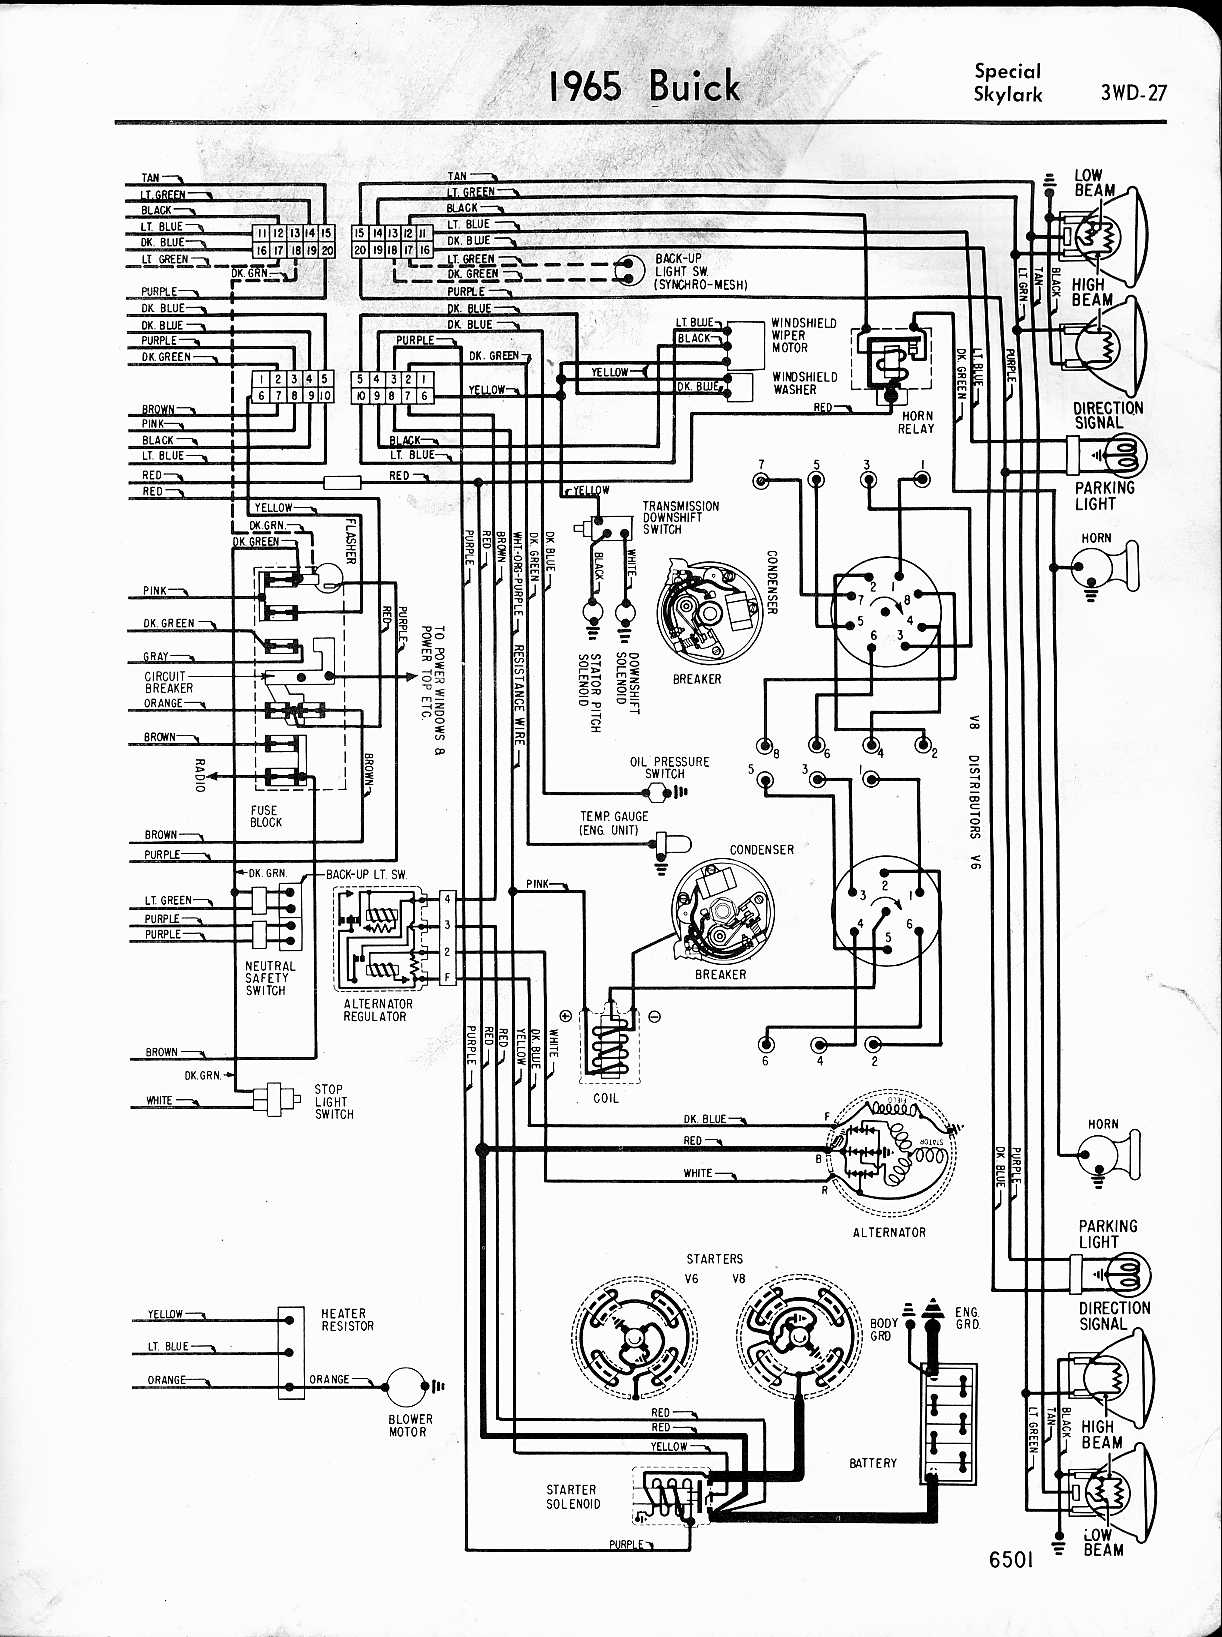 buick electra wiring diagram wiring diagrams best buick electra wiring diagram solution of your wiring diagram guide u2022 cadillac deville wiring diagram buick electra wiring diagram